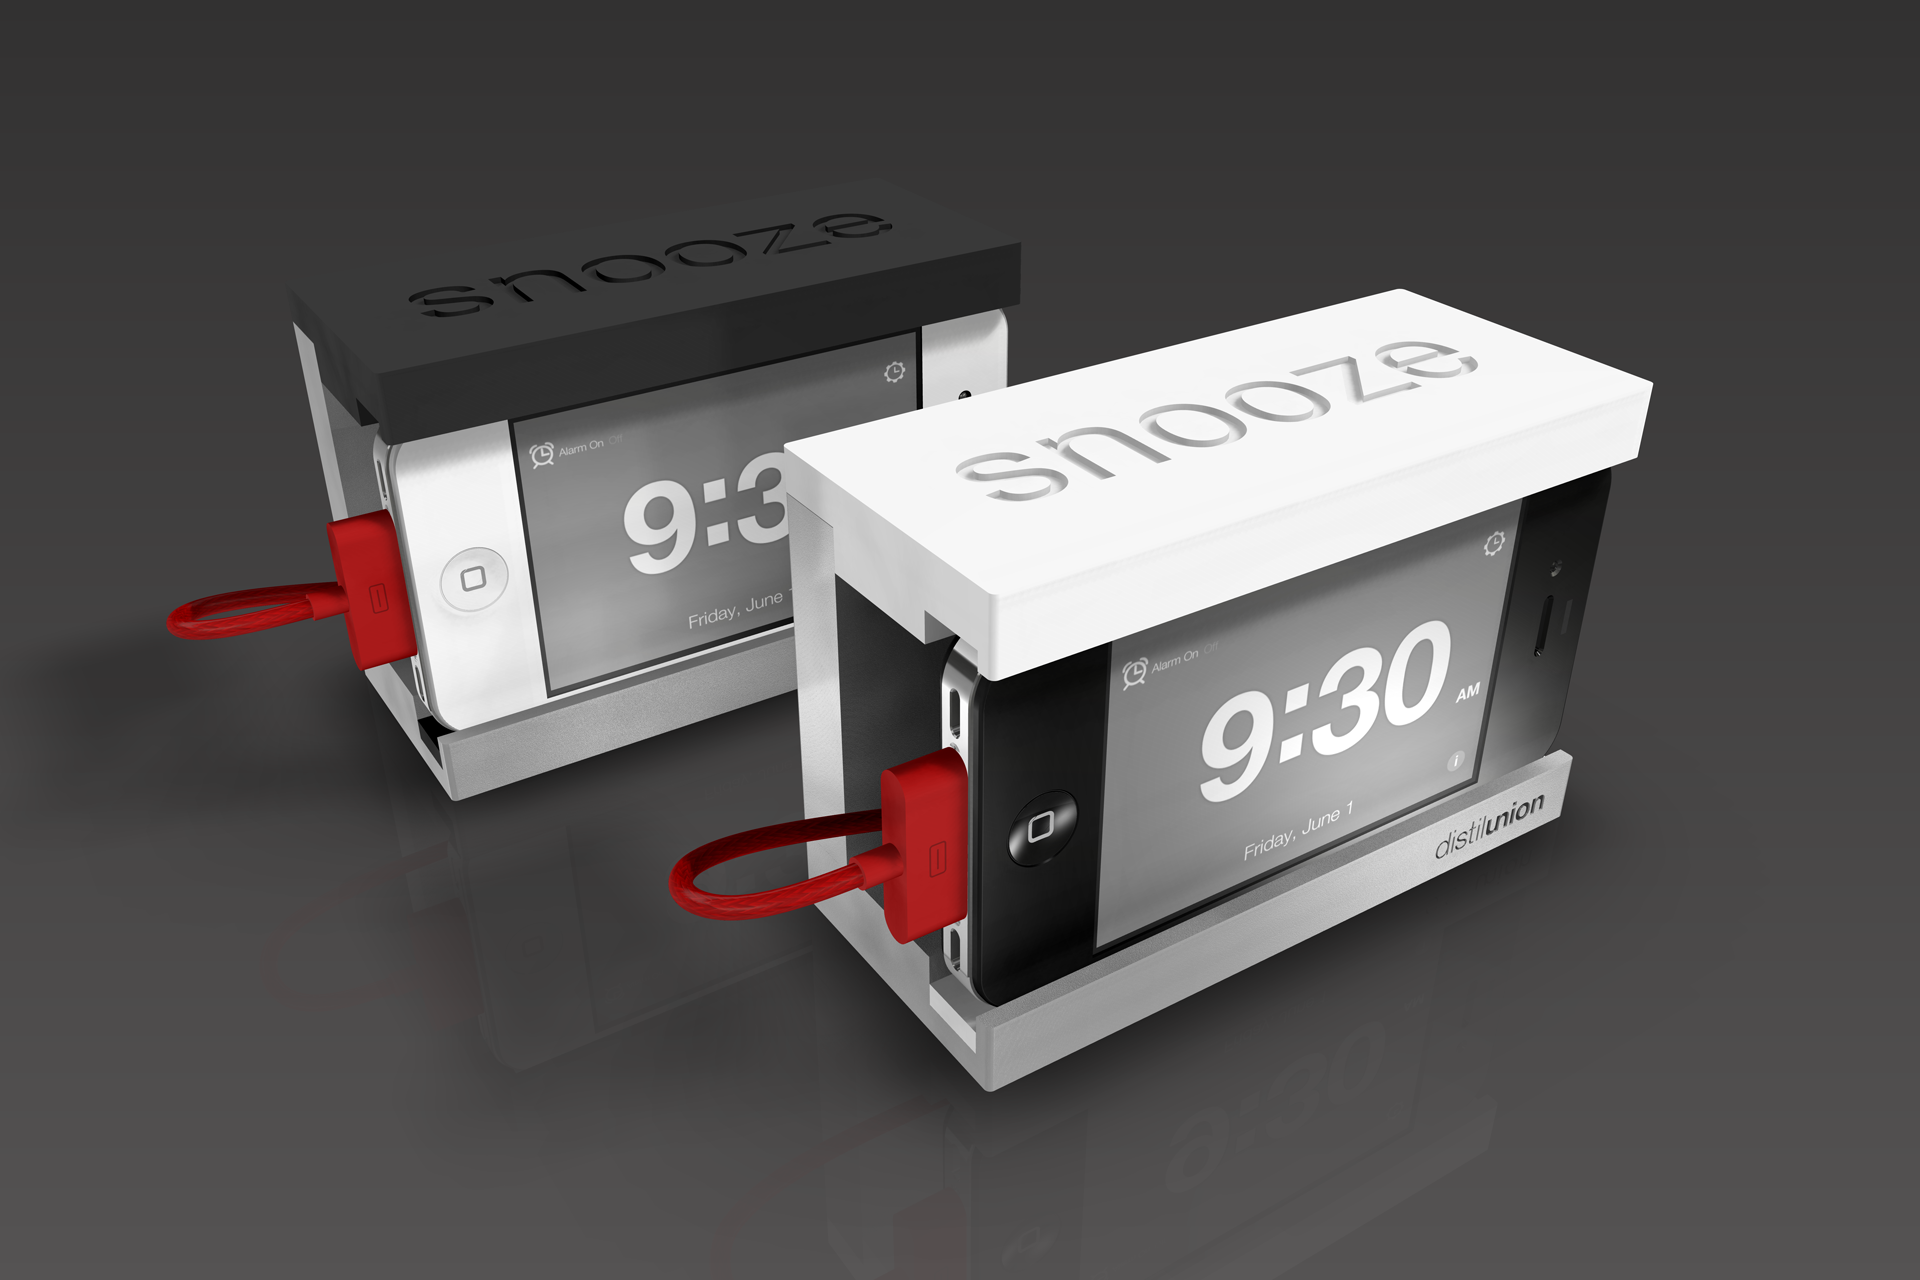 Snooze In AluminumDistil Union Snooze IPhone Alarm Clock Dock Stand  Aluminum ...